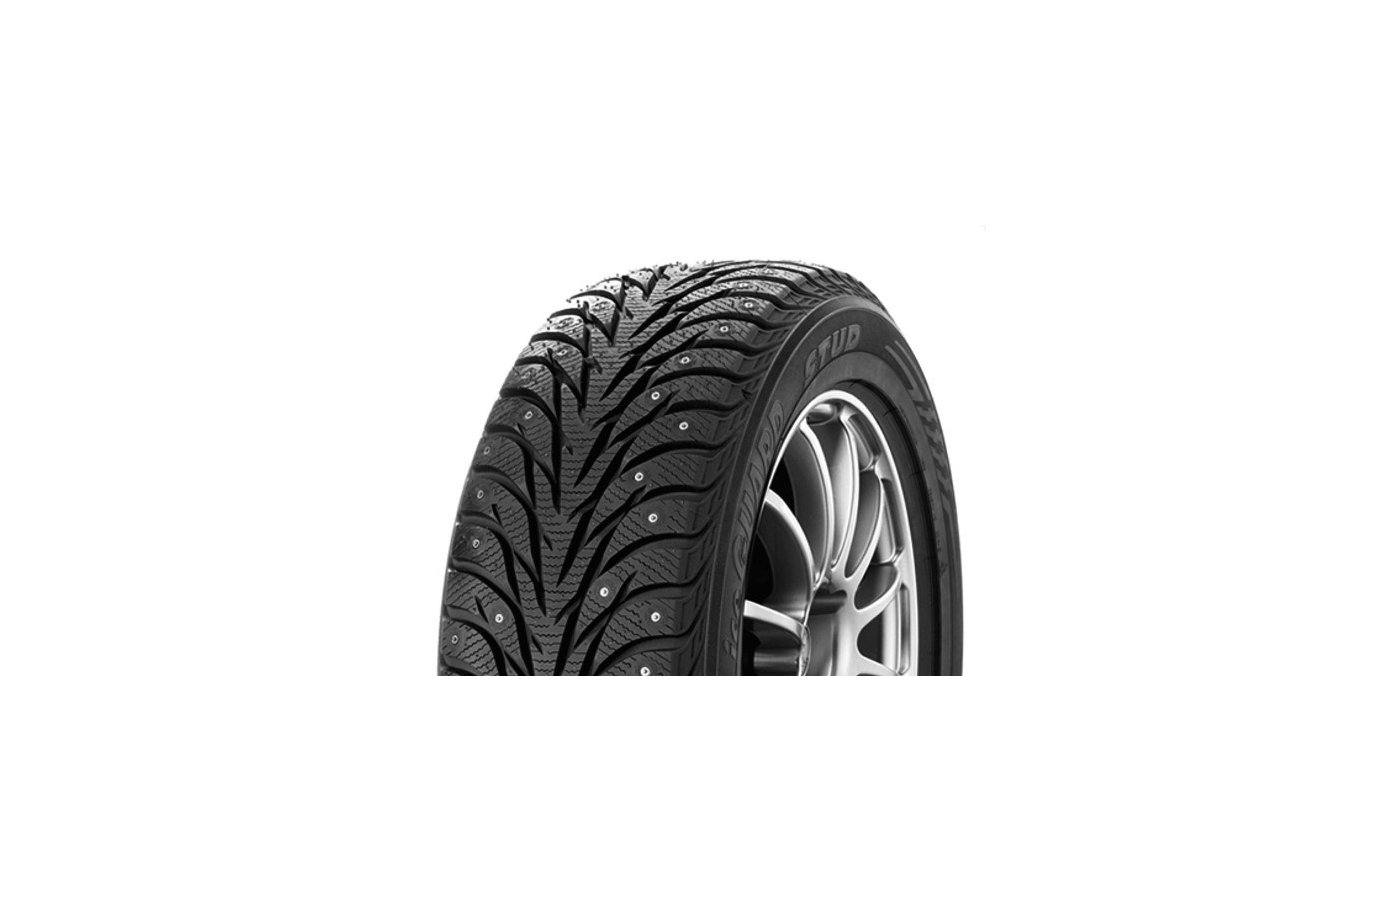 Шина Yokohama Ice Guard IG35 Plus 235/60 R17 TL 102T шип